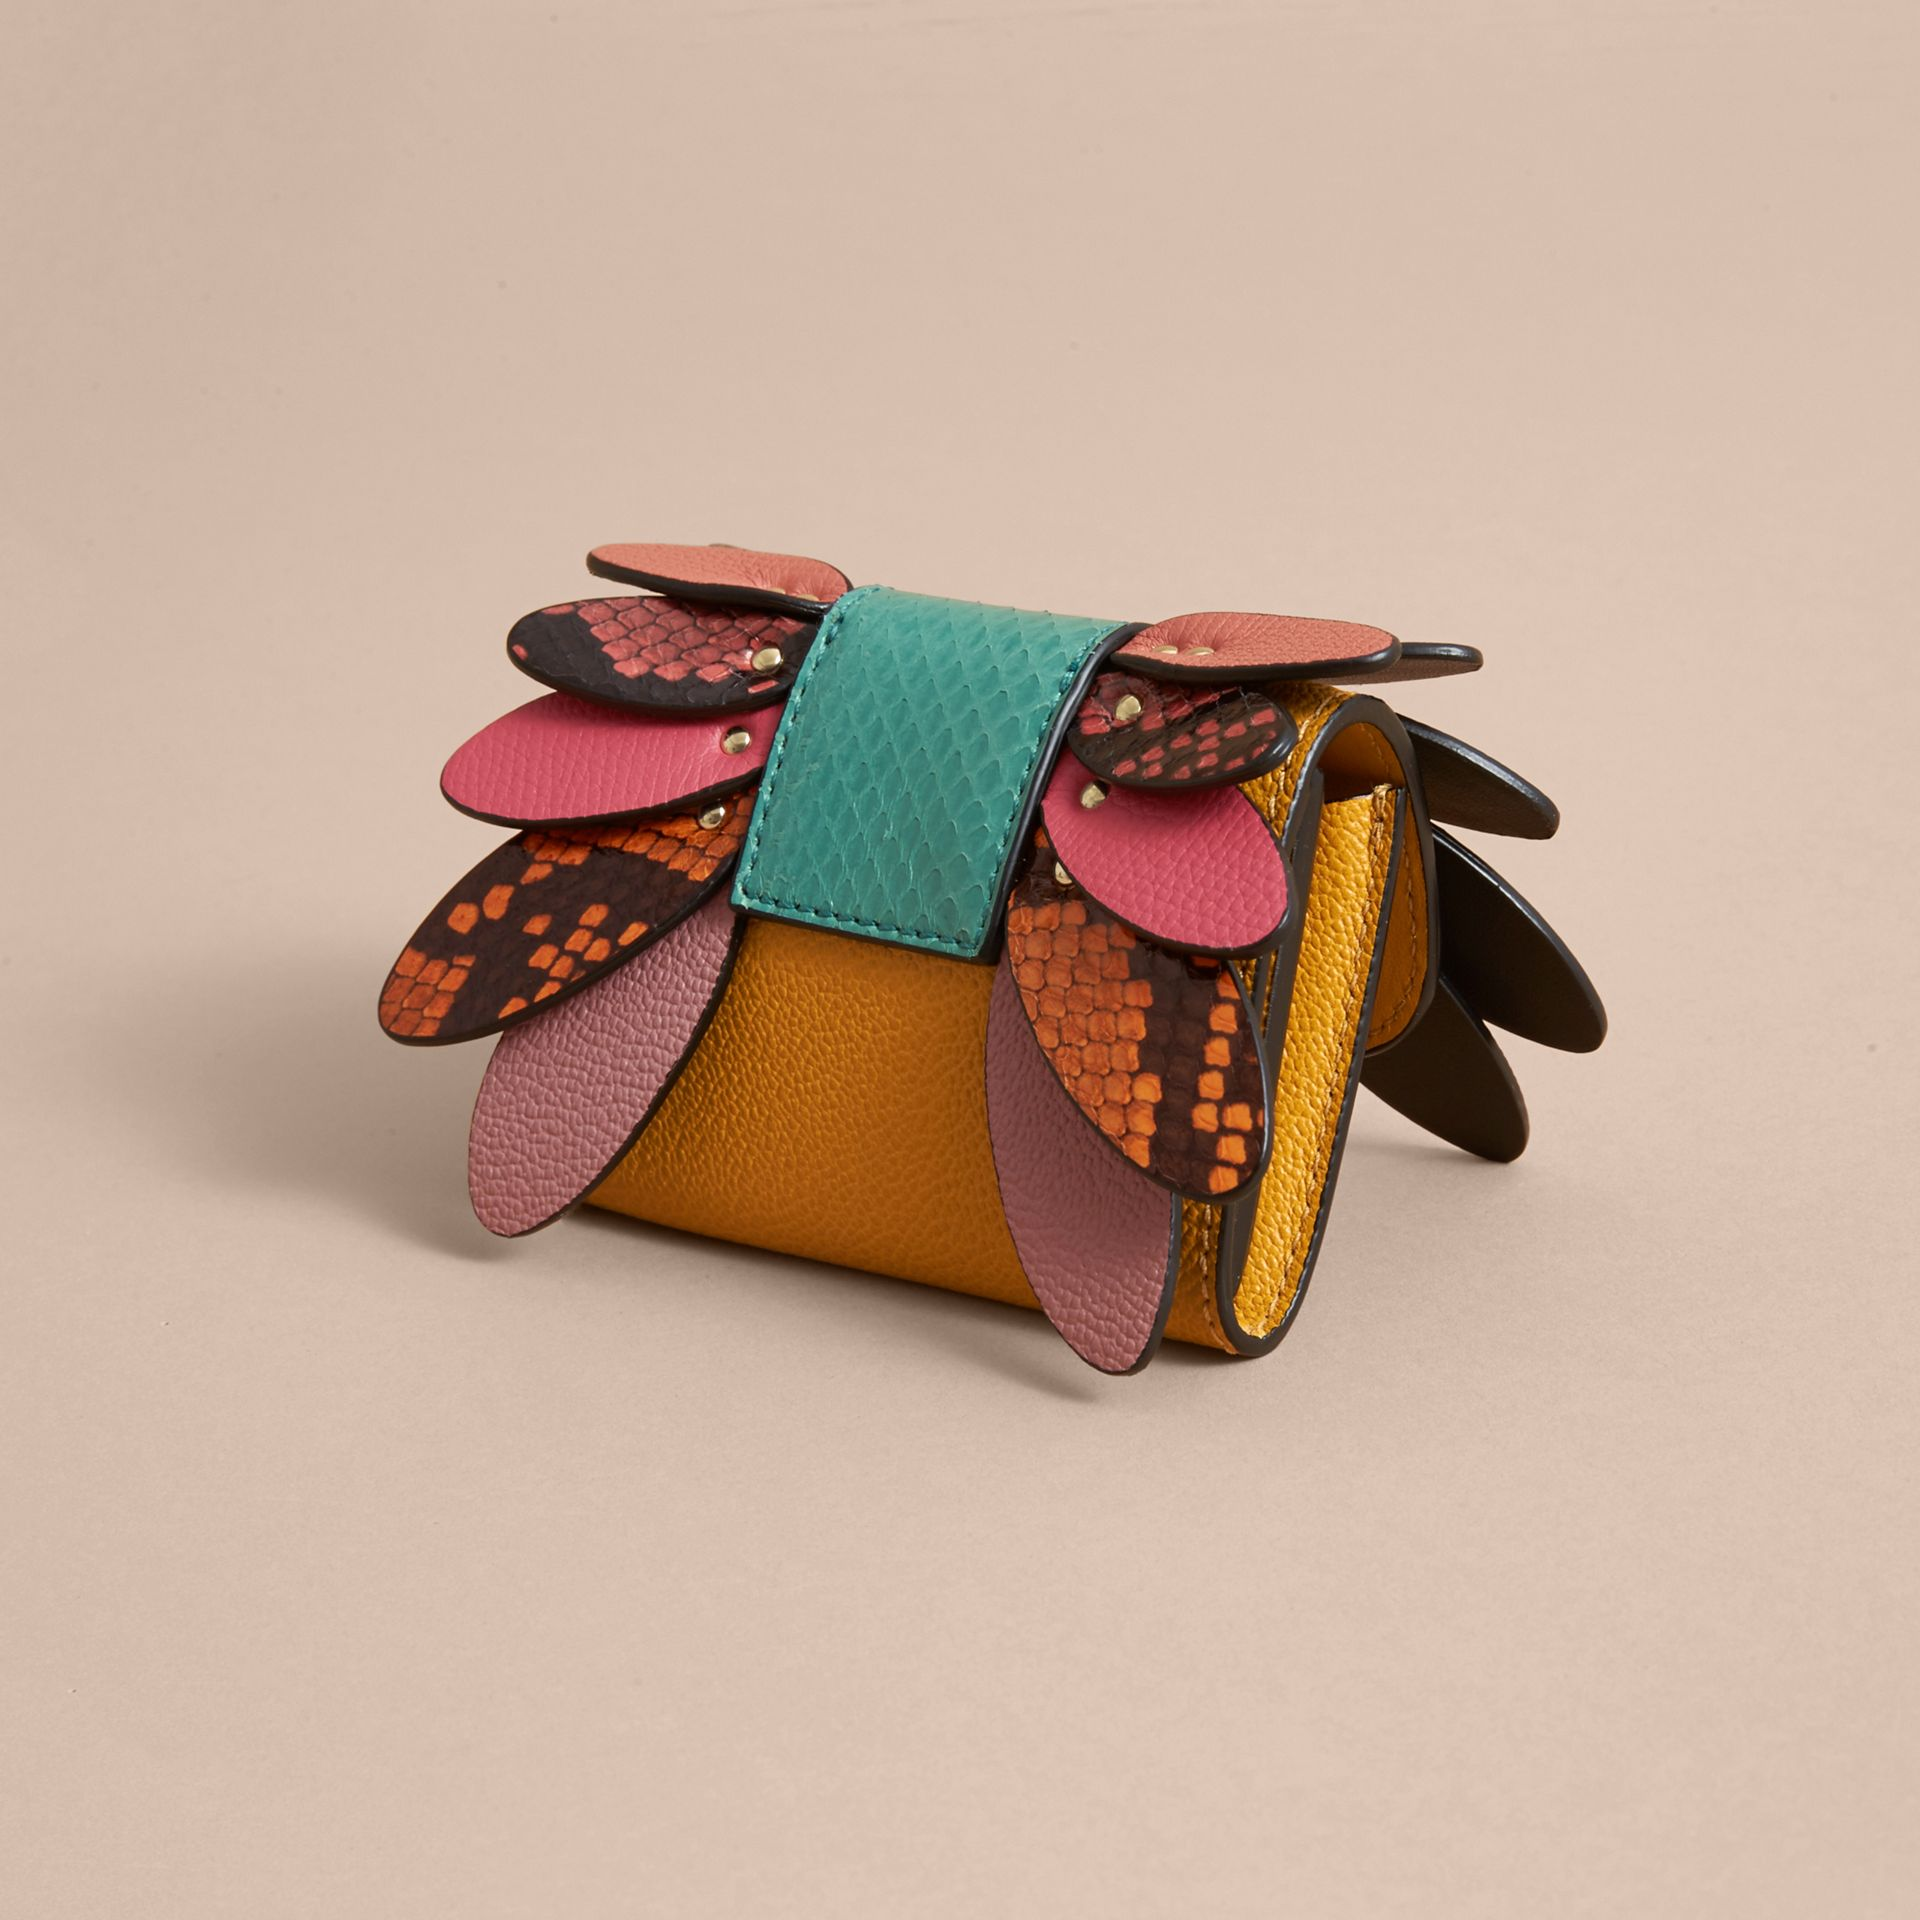 Snakeskin and Leather Appliqué Card Case in Bright Straw - Women | Burberry - gallery image 3